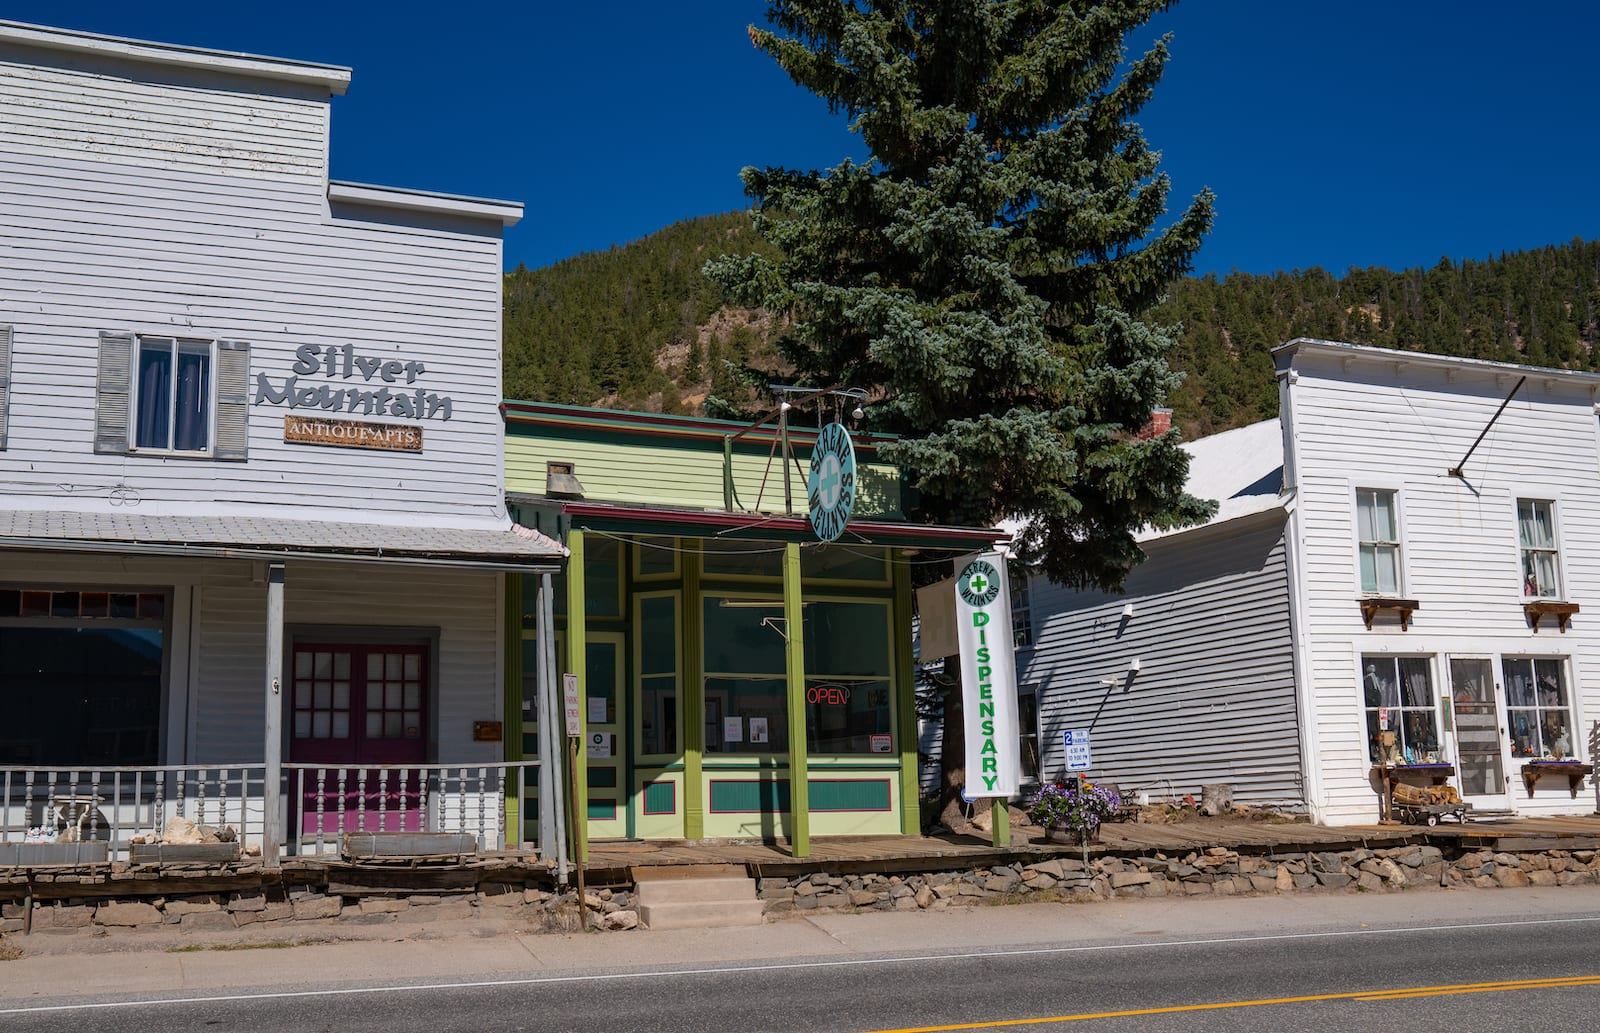 Recreational Marijuana Dispensary Empire Colorado